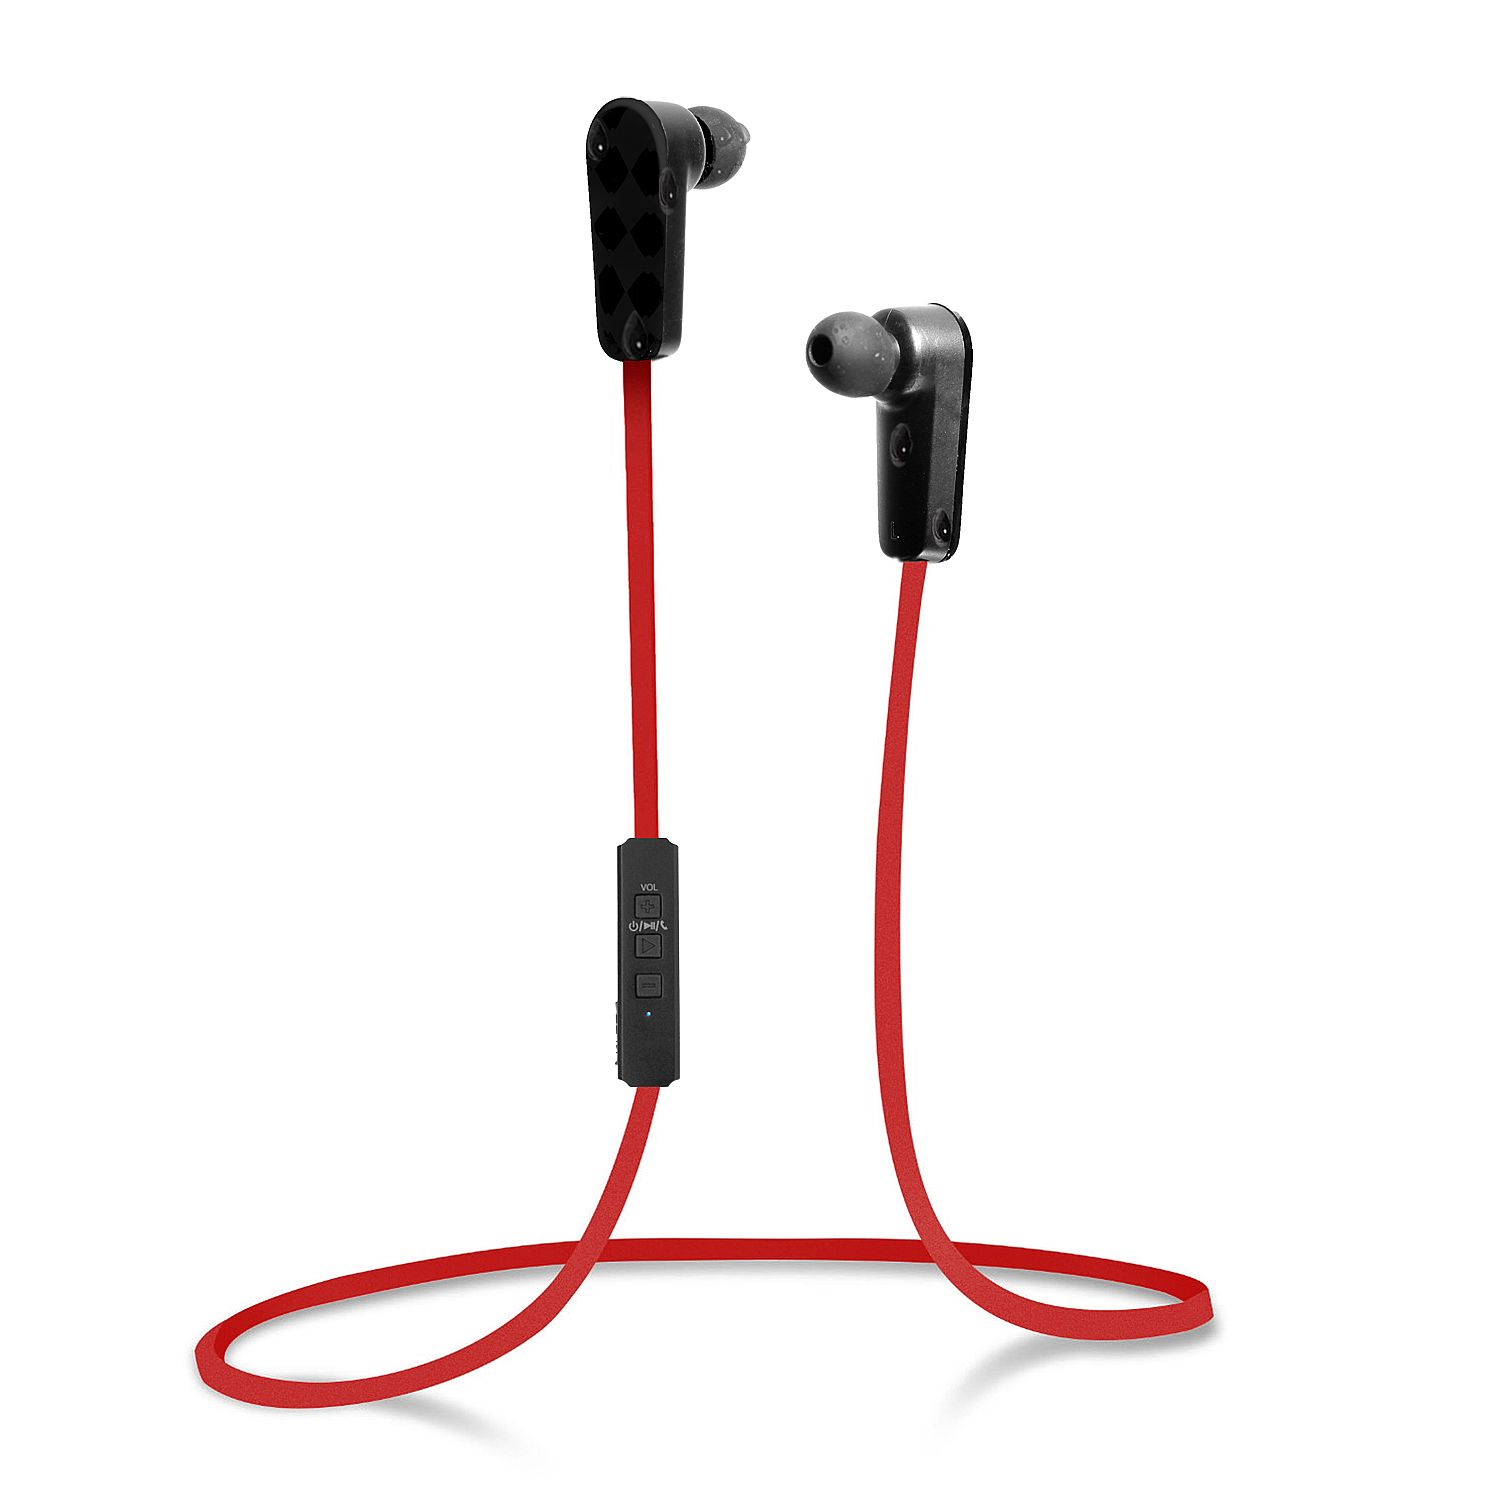 jarv nmotion sport wireless bluetooth stereo earbuds headphones with built in microphone red. Black Bedroom Furniture Sets. Home Design Ideas